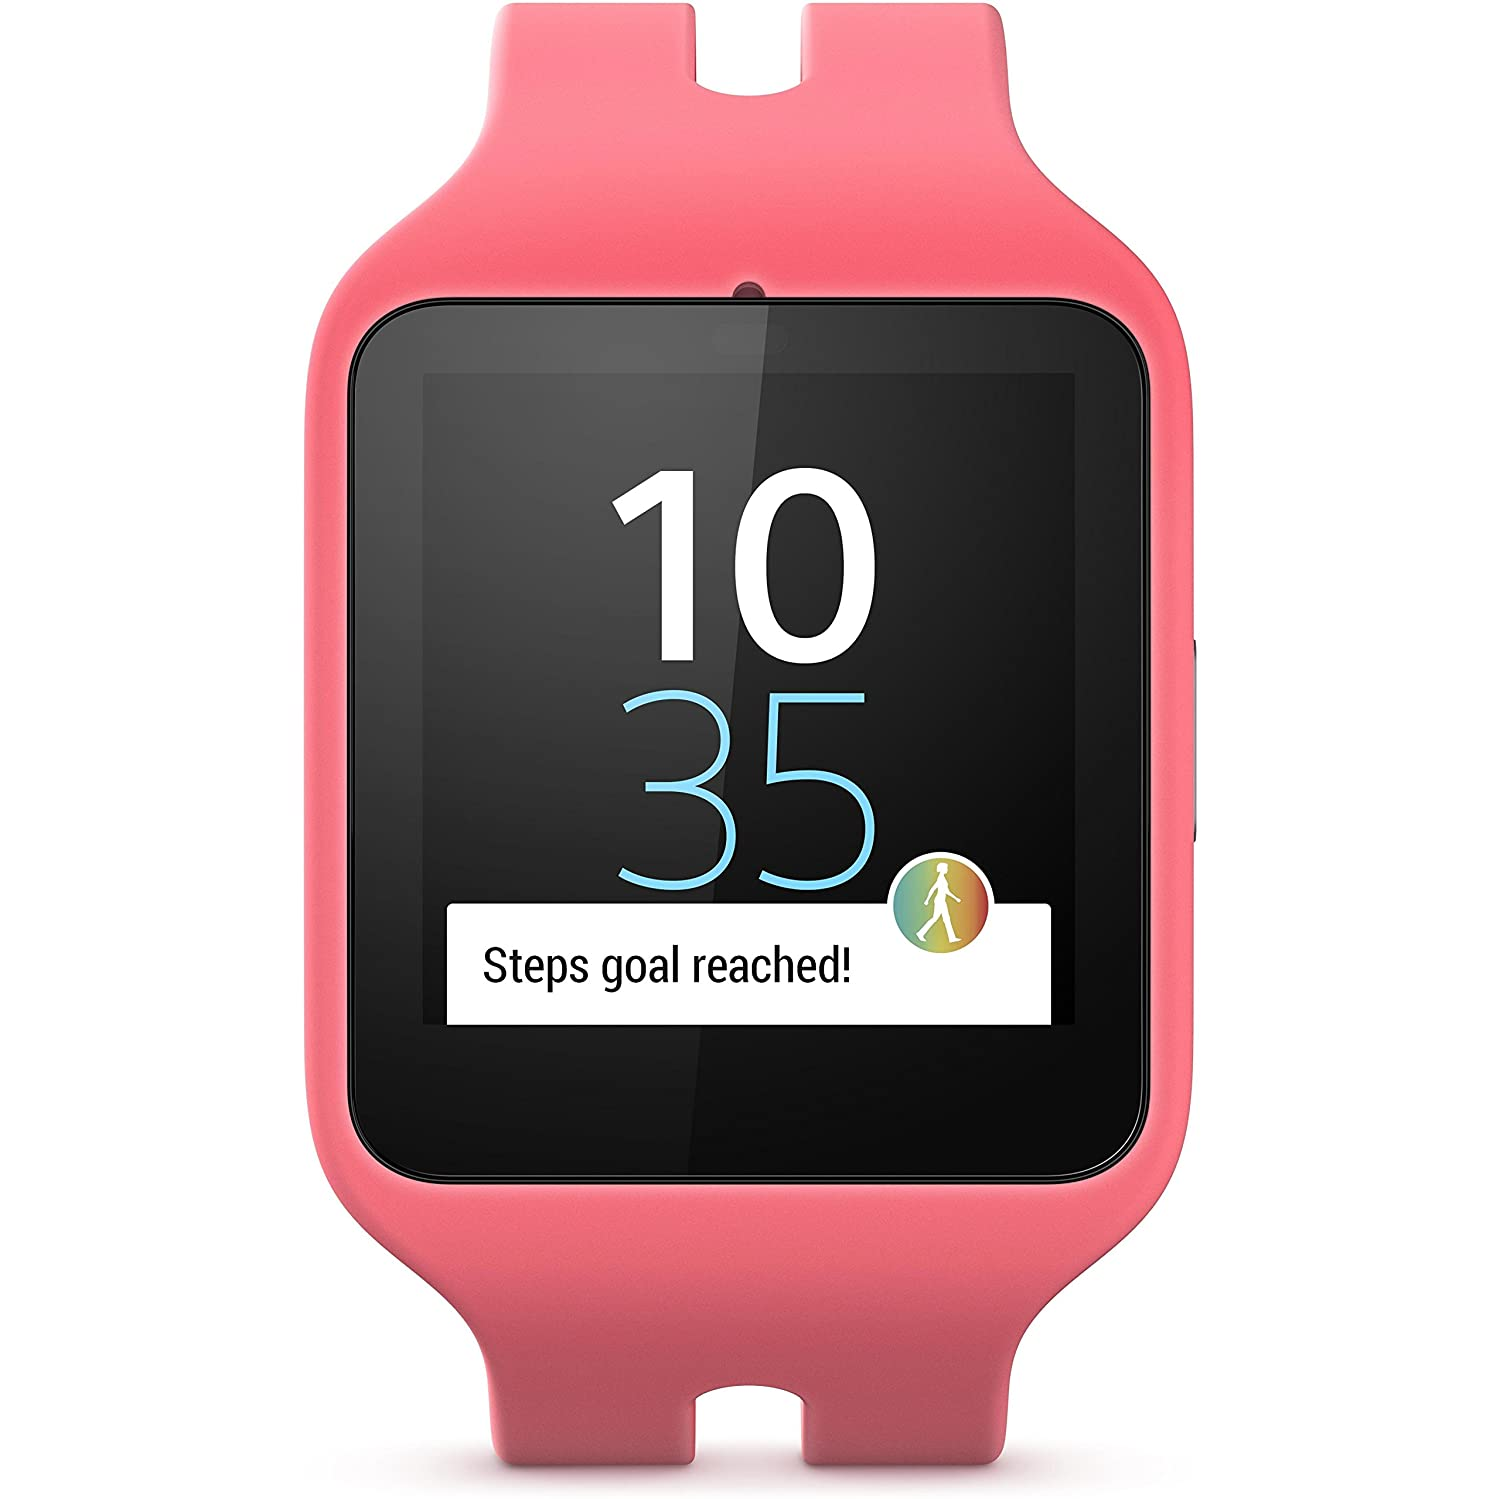 Amazon.com: Sony Smartwatch 3 SRW50 for Android 4.3 onwards ...